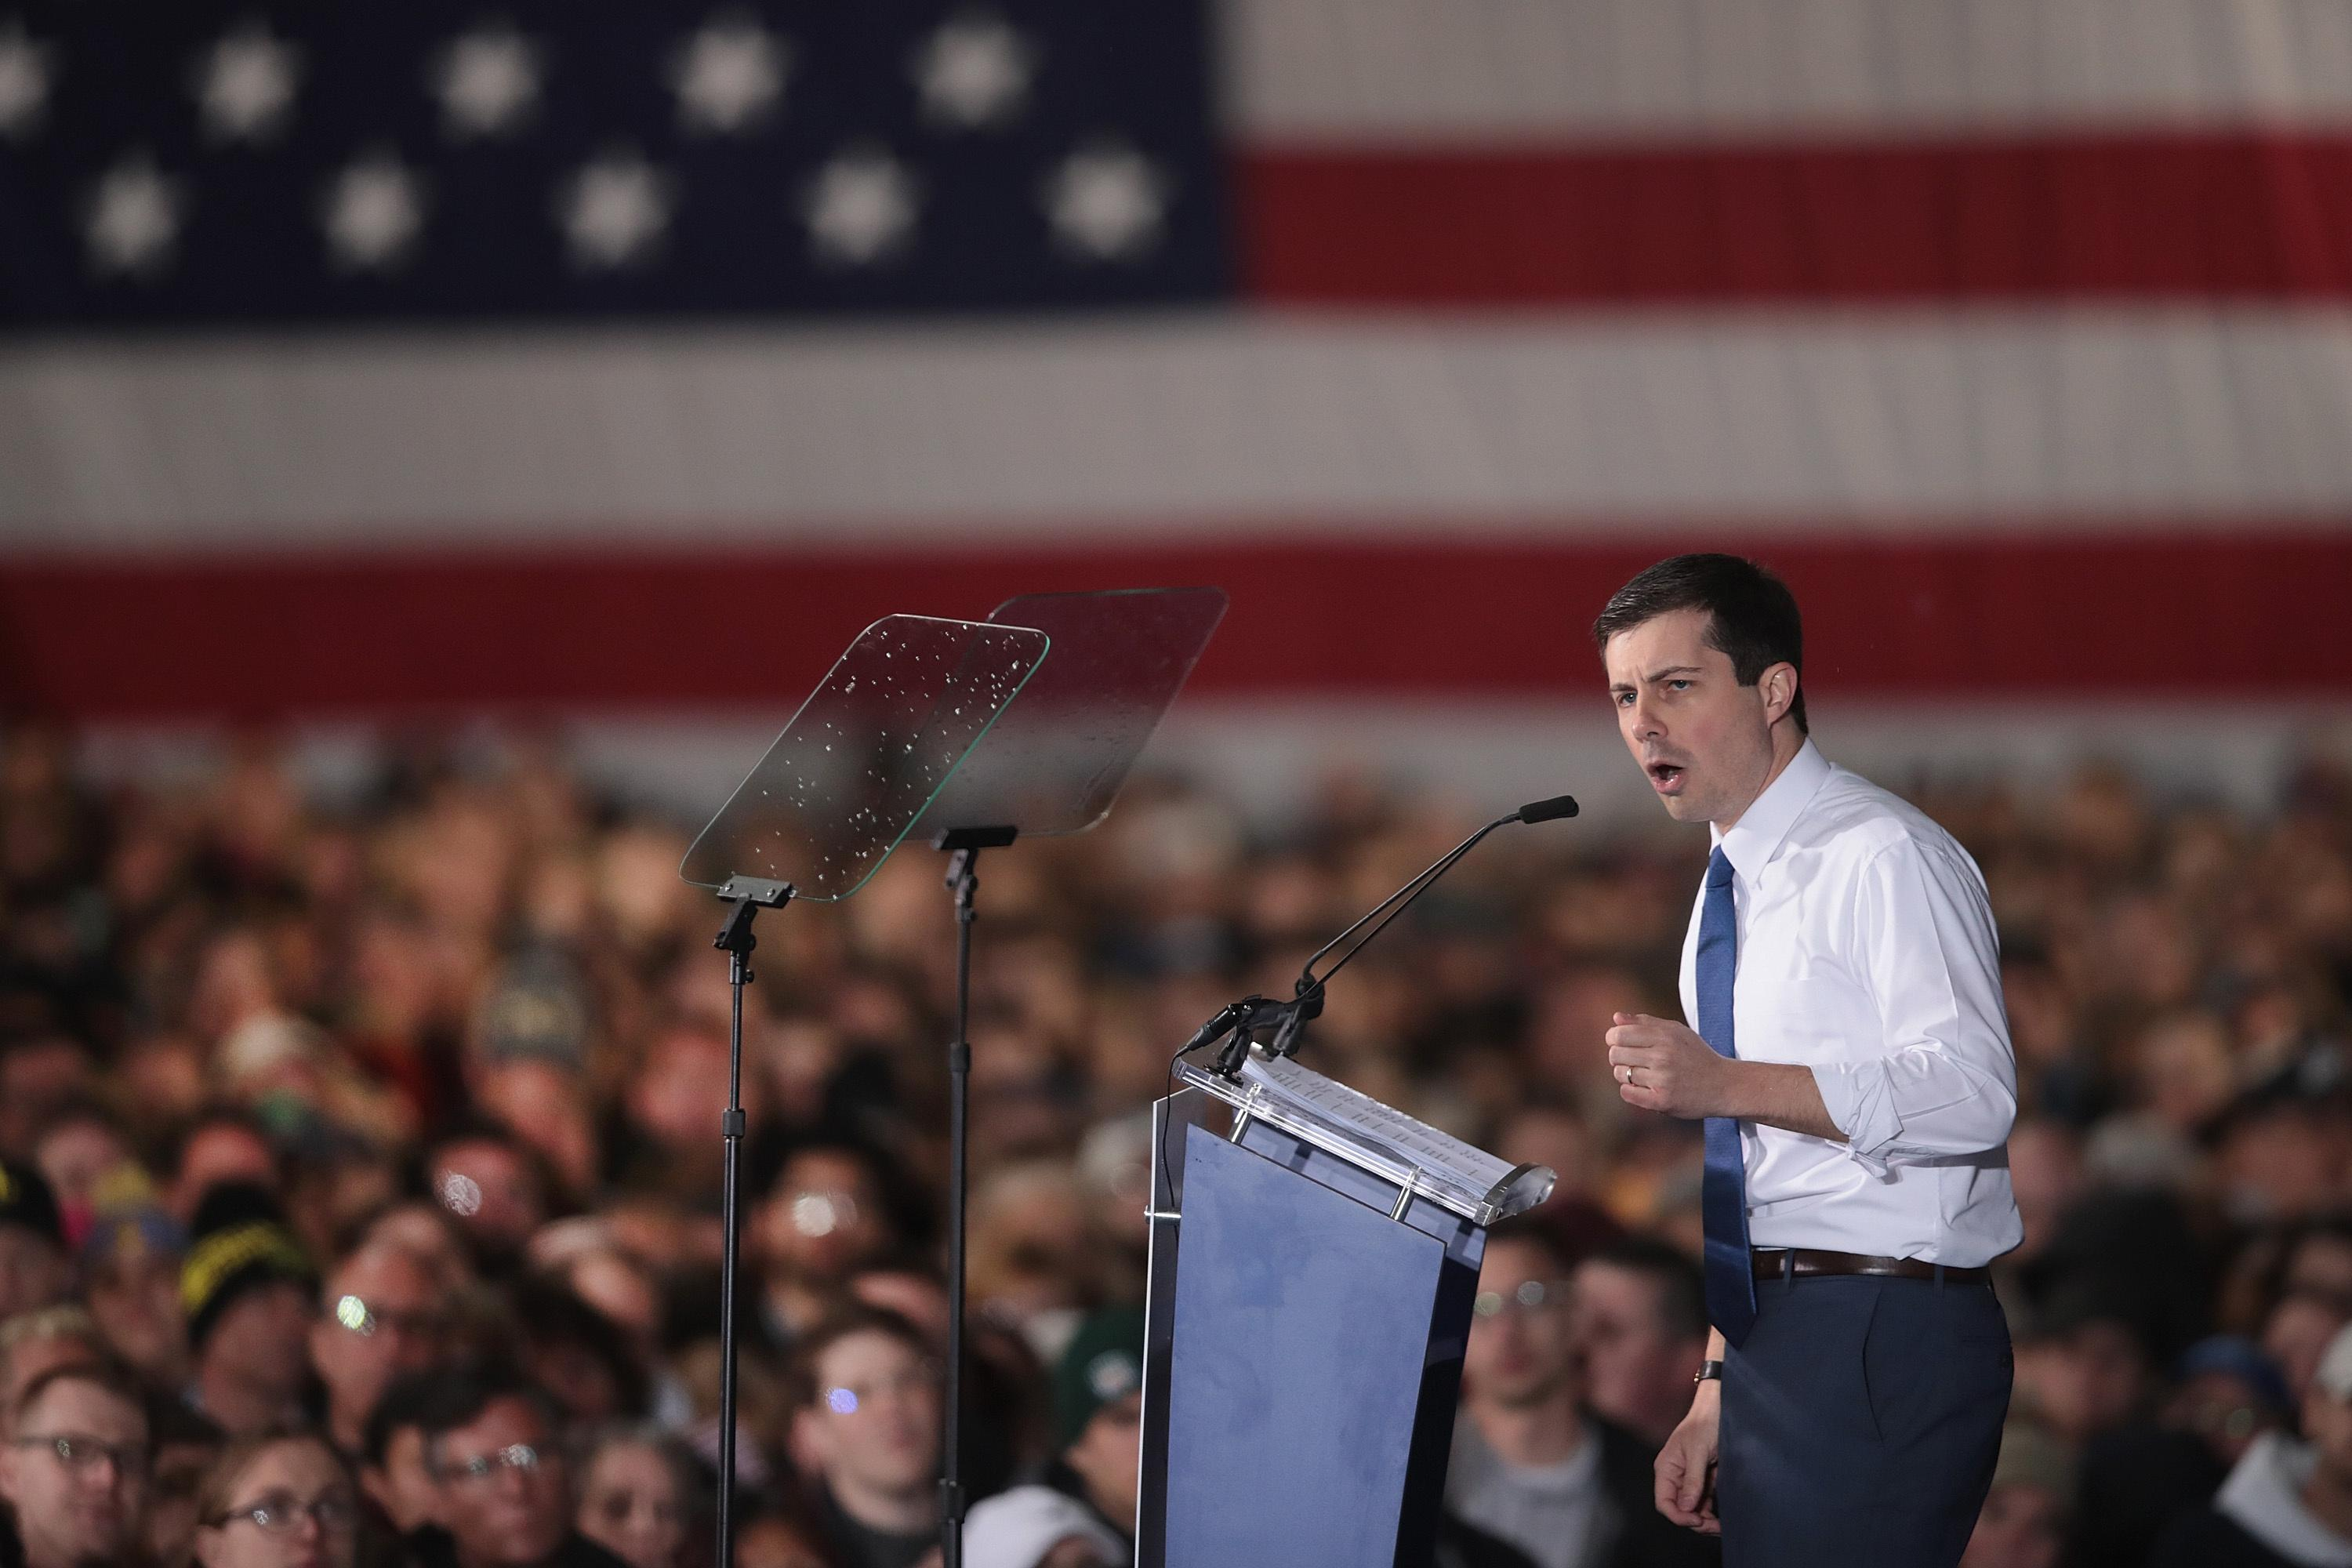 Young, Ivy League and data-driven: why venture capitalists love Pete Buttigieg